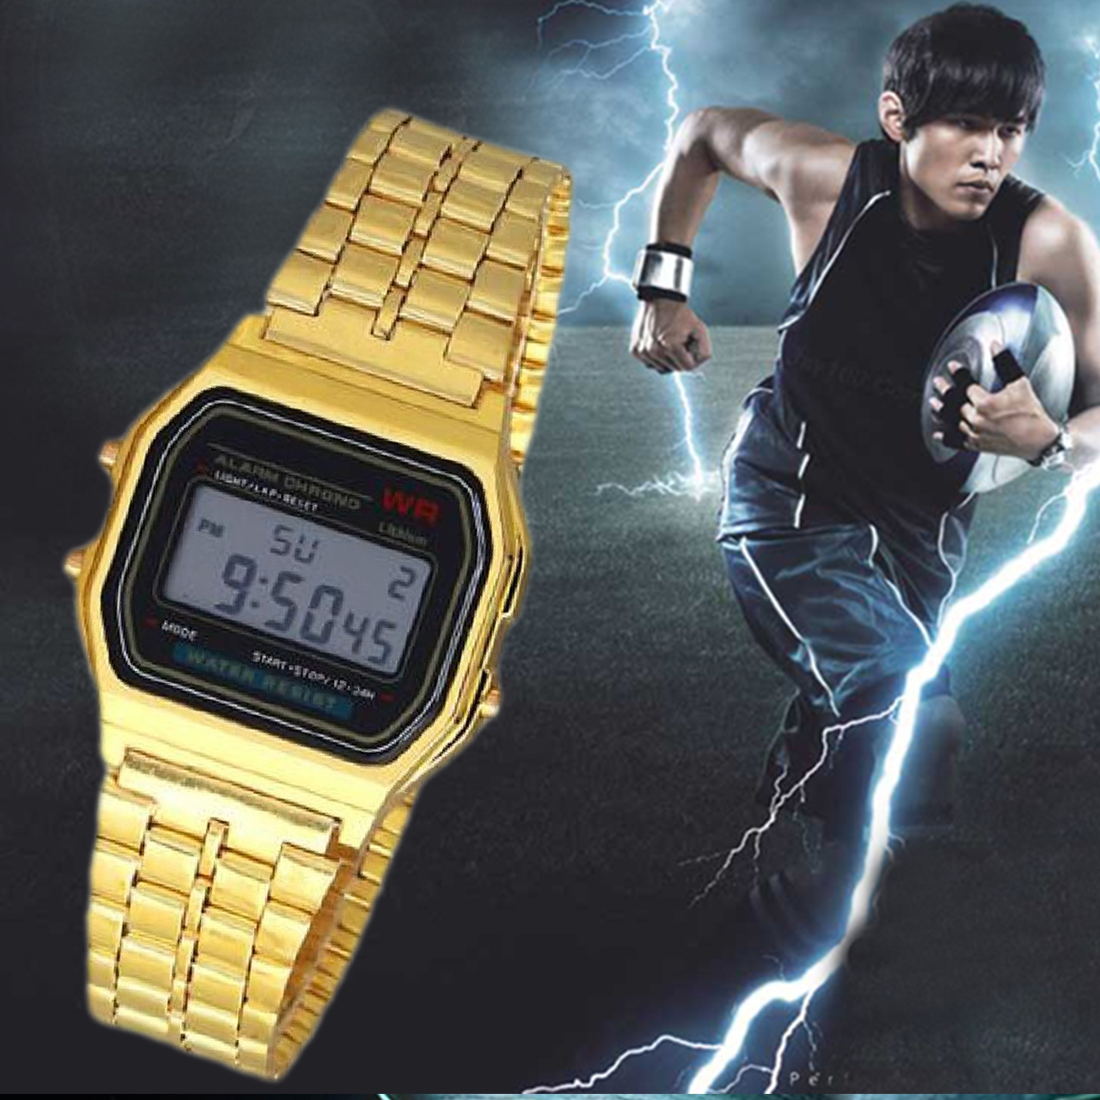 Permalink to Digital Watch Fashion Wristwatches Gold Slver Couple Watch Square Military Men Women Dress Sports Watches Women Watch